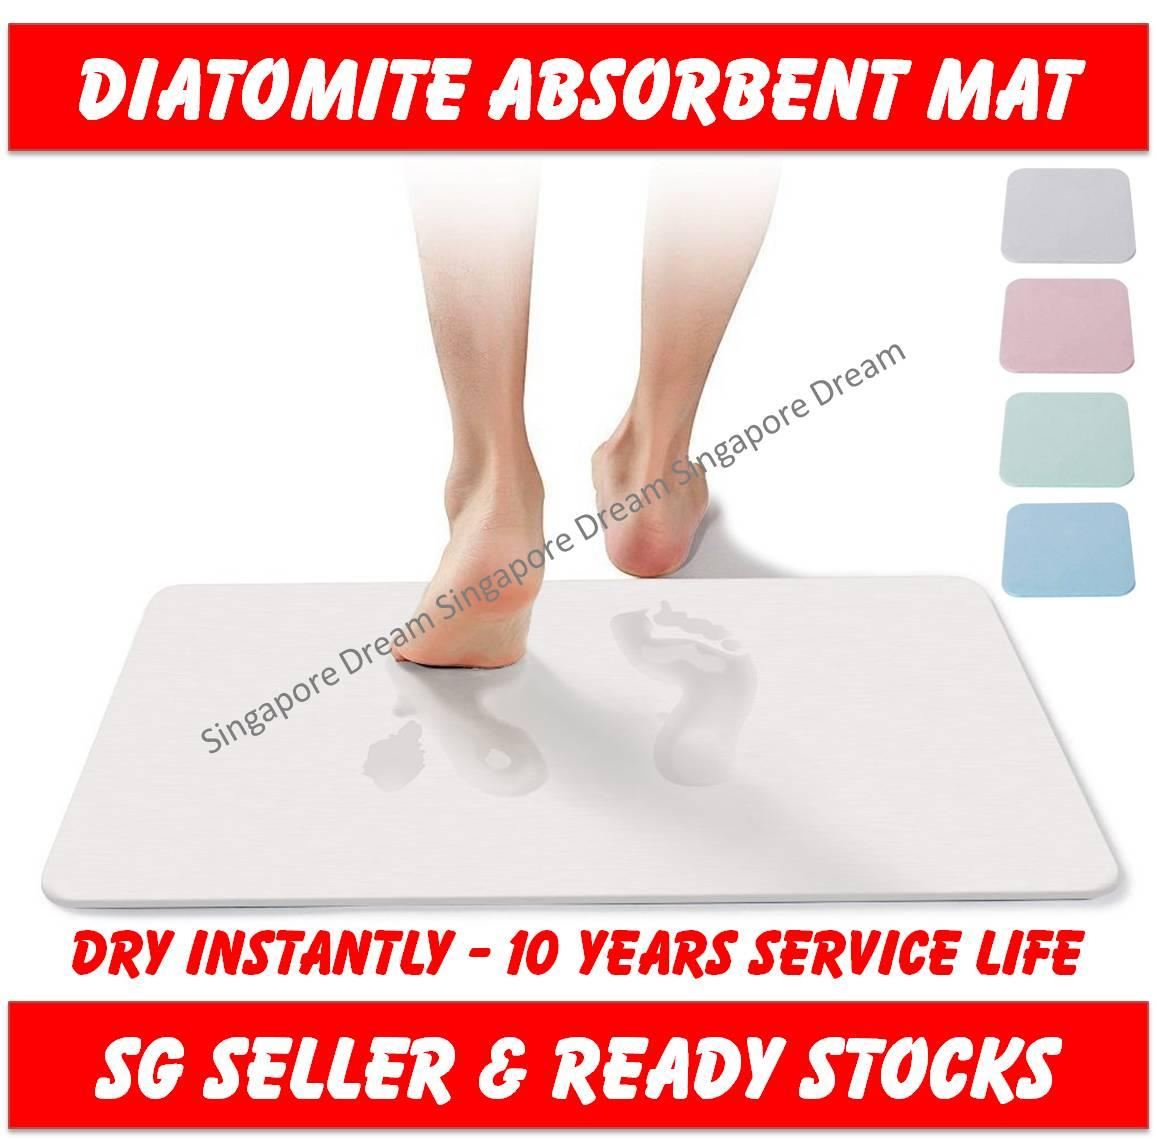 Diatomite Mat - Earth Absorbent Fast Drying Bath Floor Mat Non Slip Antibacterial For Bathroom & Shower By Singapore Dream.